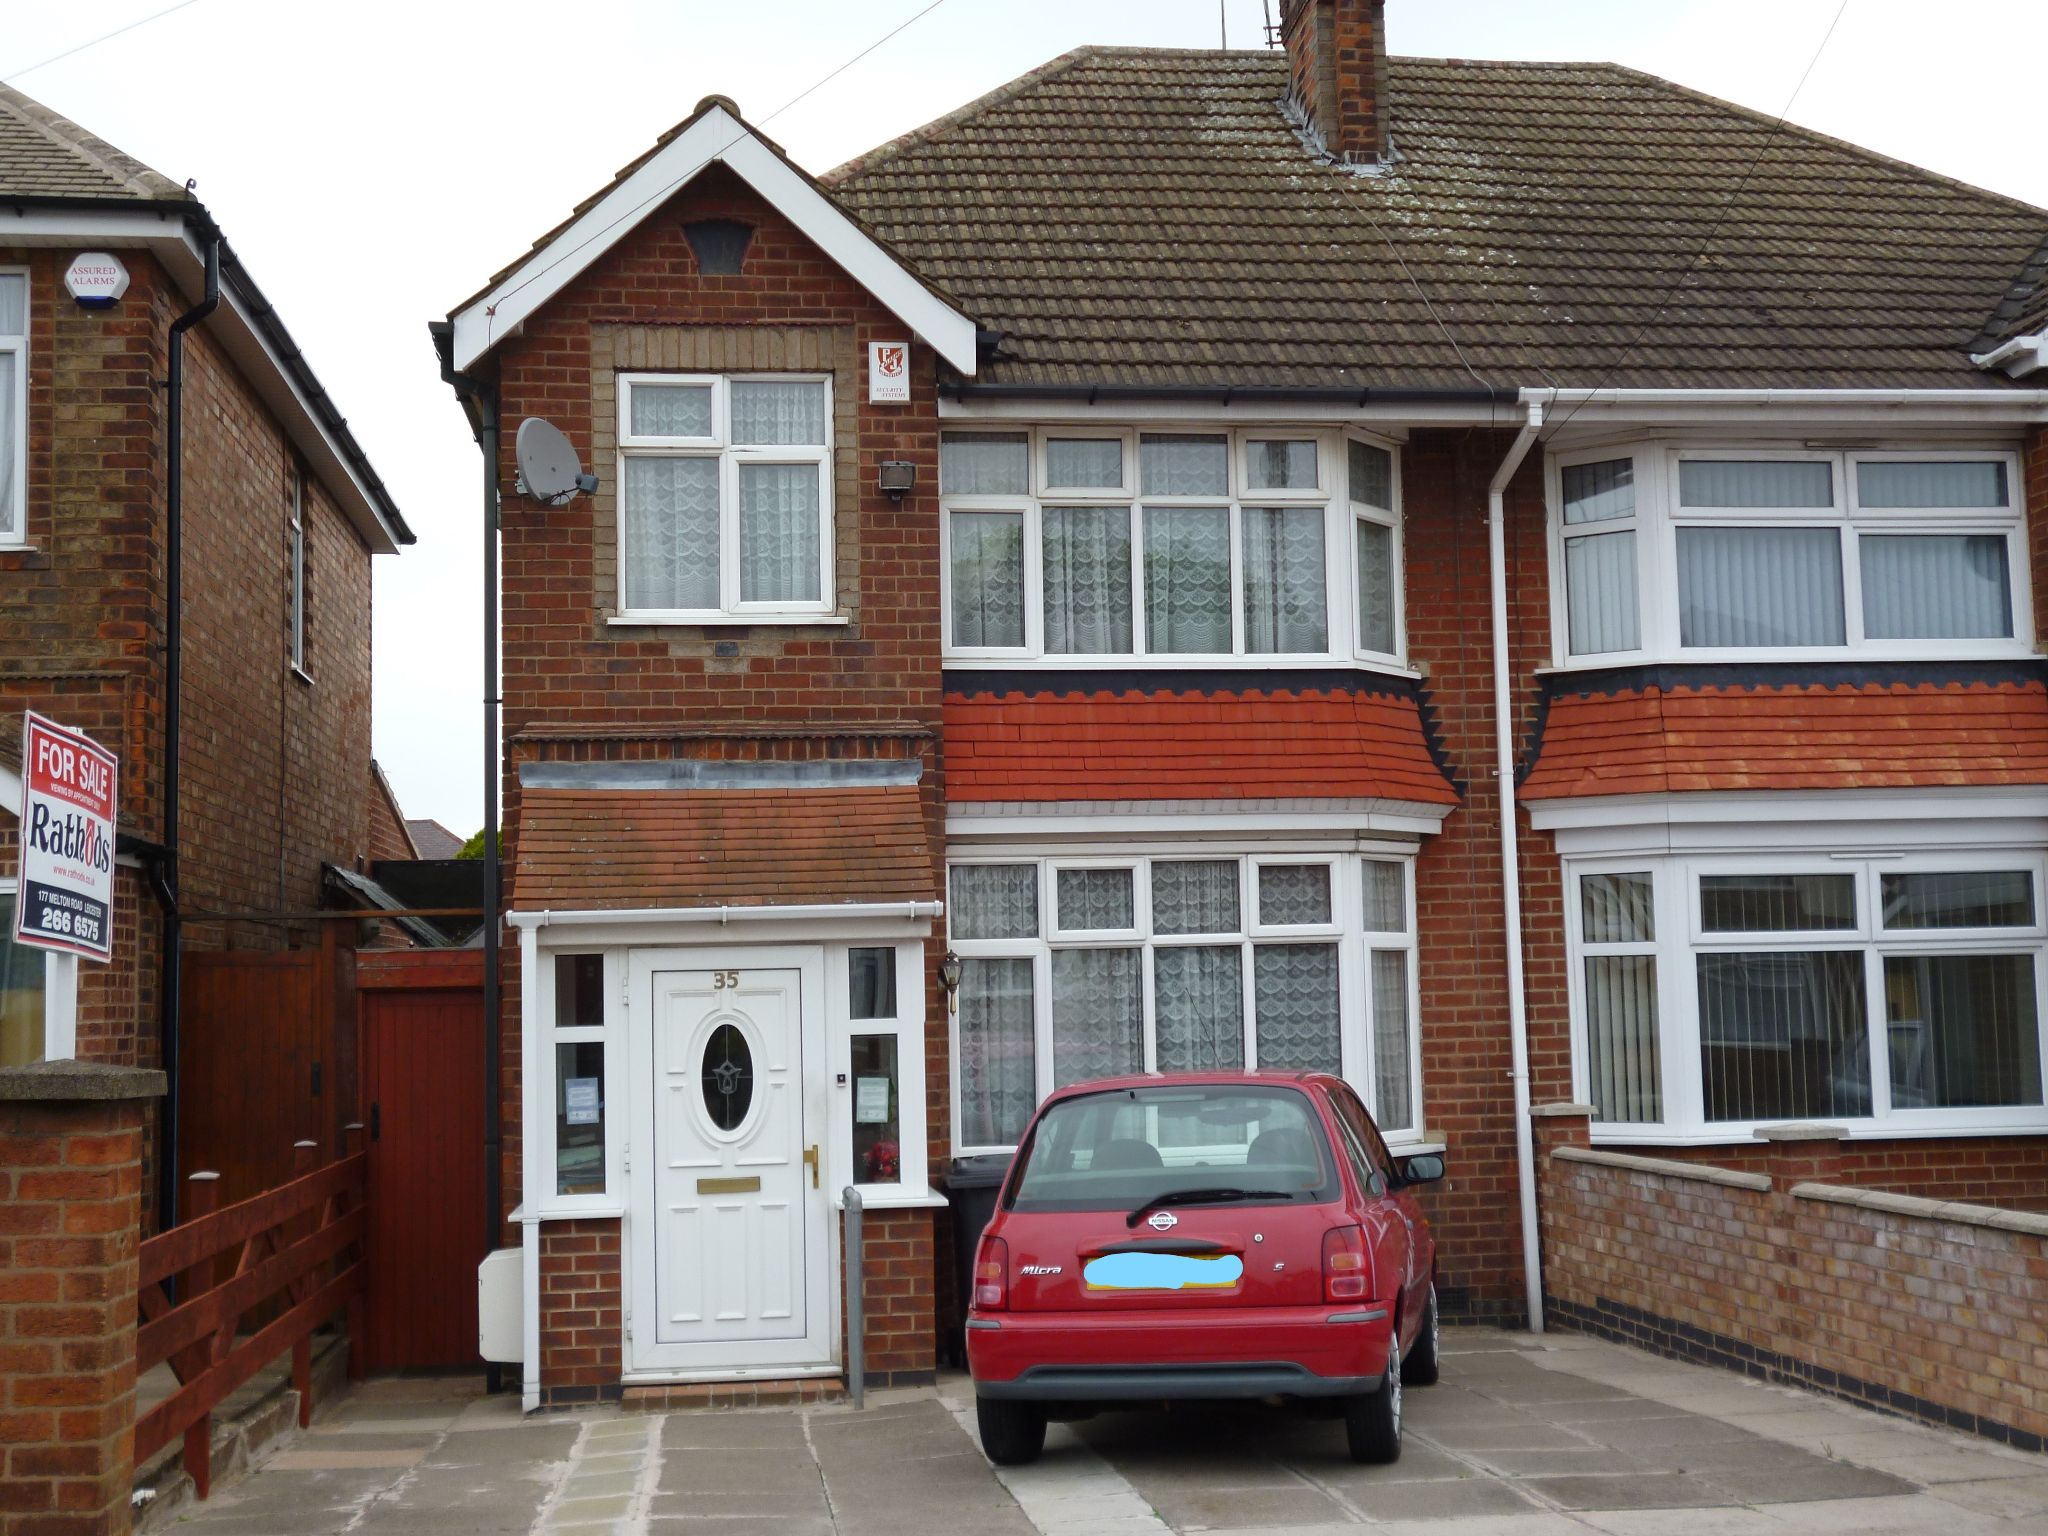 3 bedroom semi-detached house For Sale in Leicester - Photograph 1.